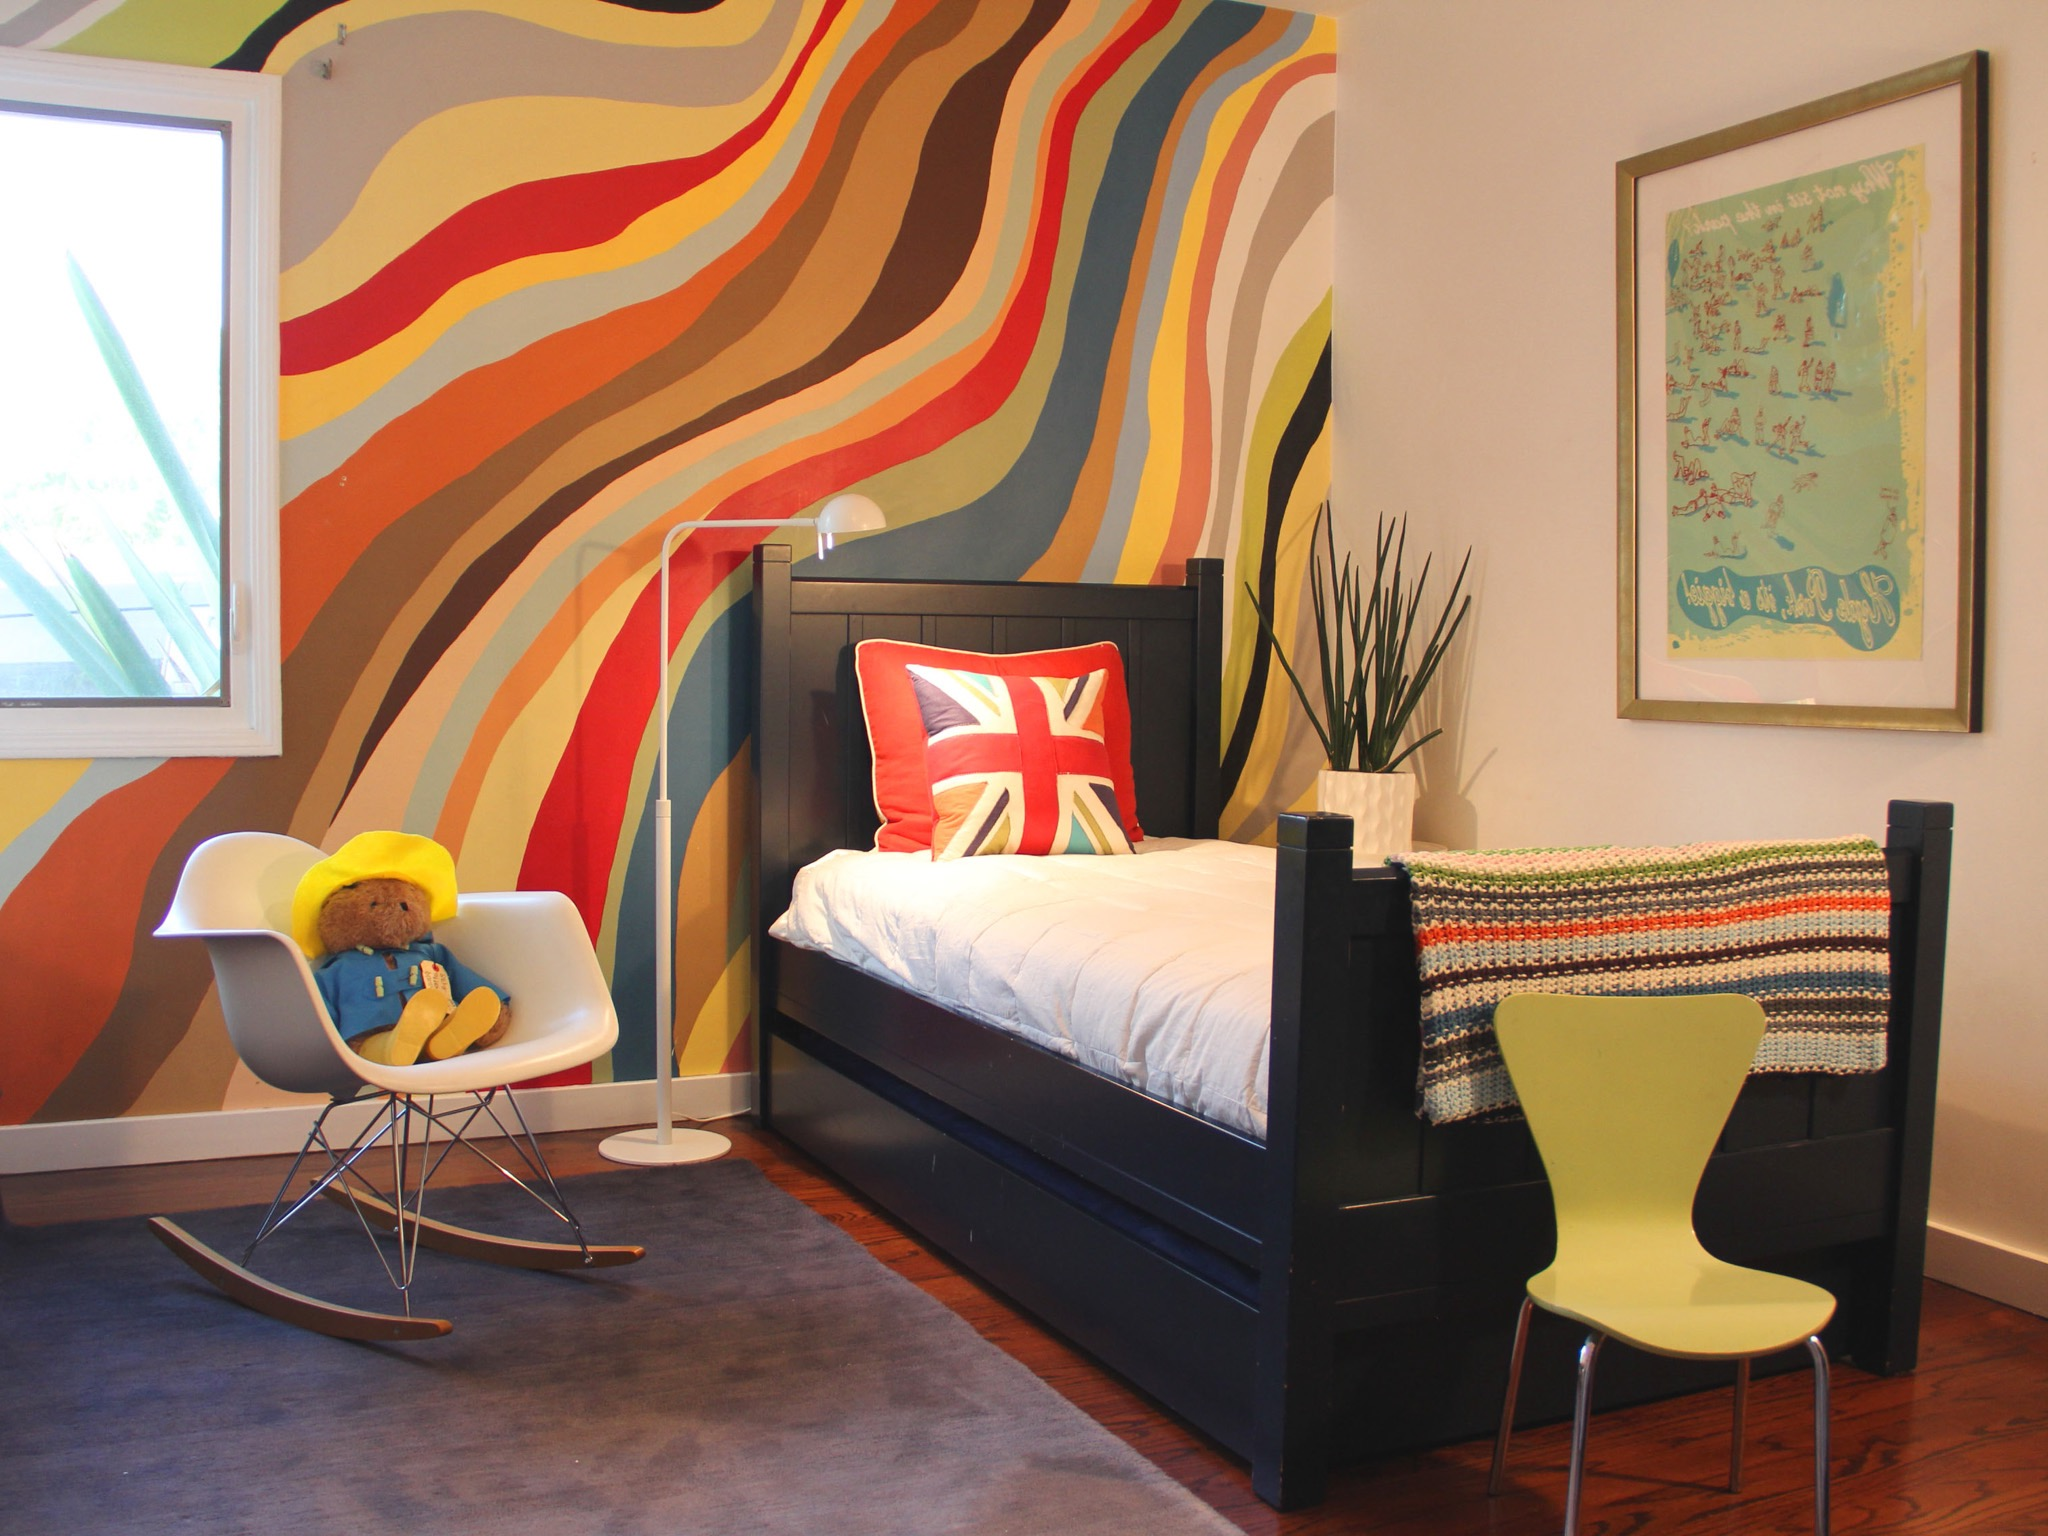 Colorful Mural In Kids Bedroom Decor (View 15 of 22)